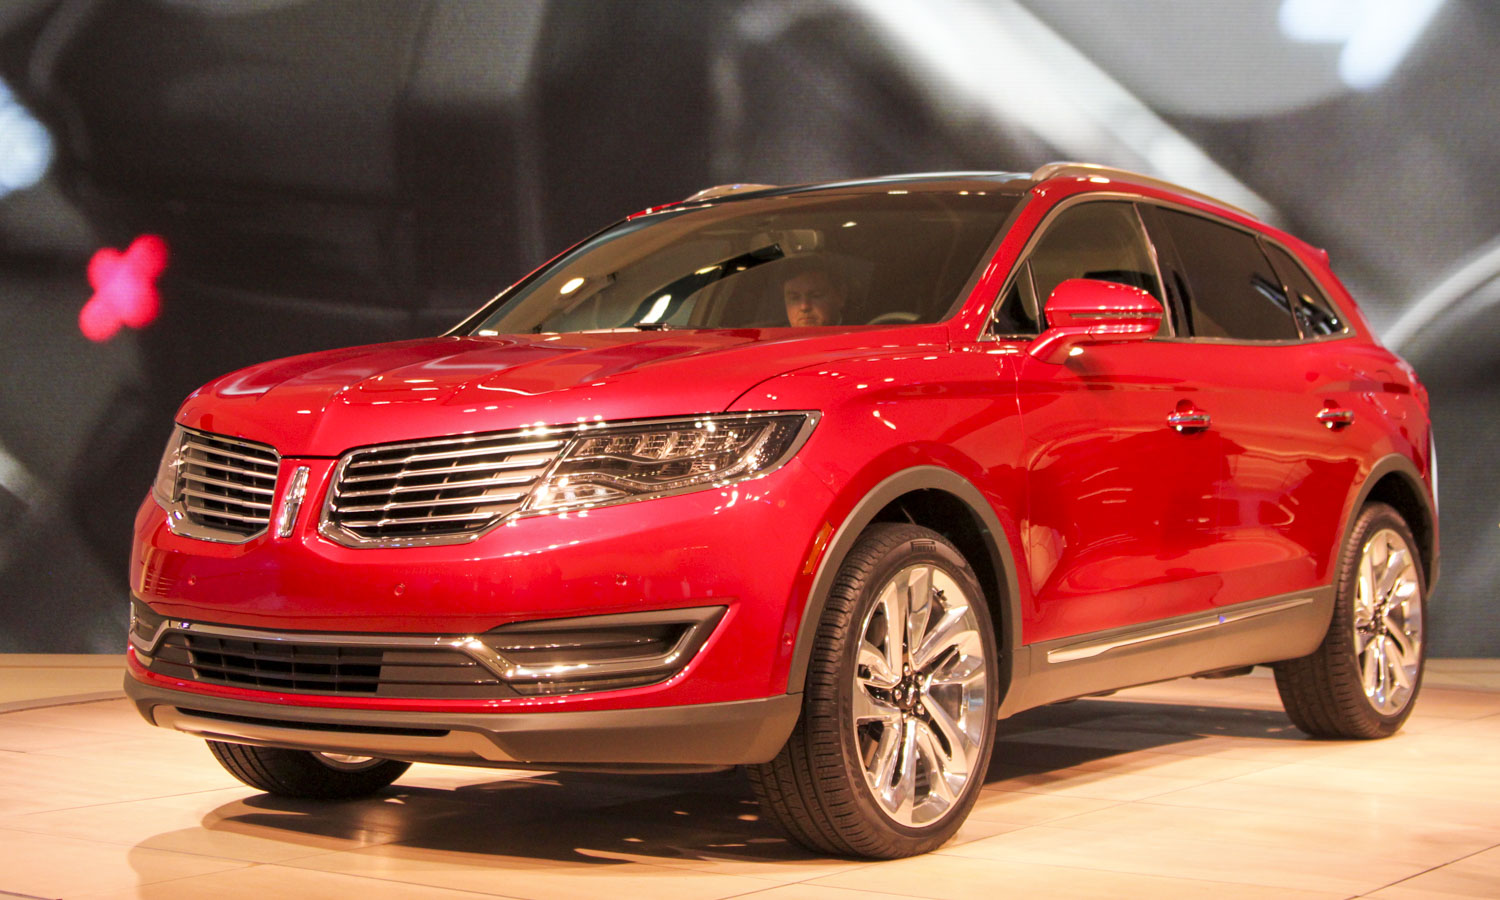 2016 Lincoln MKX (c) Perry Stern